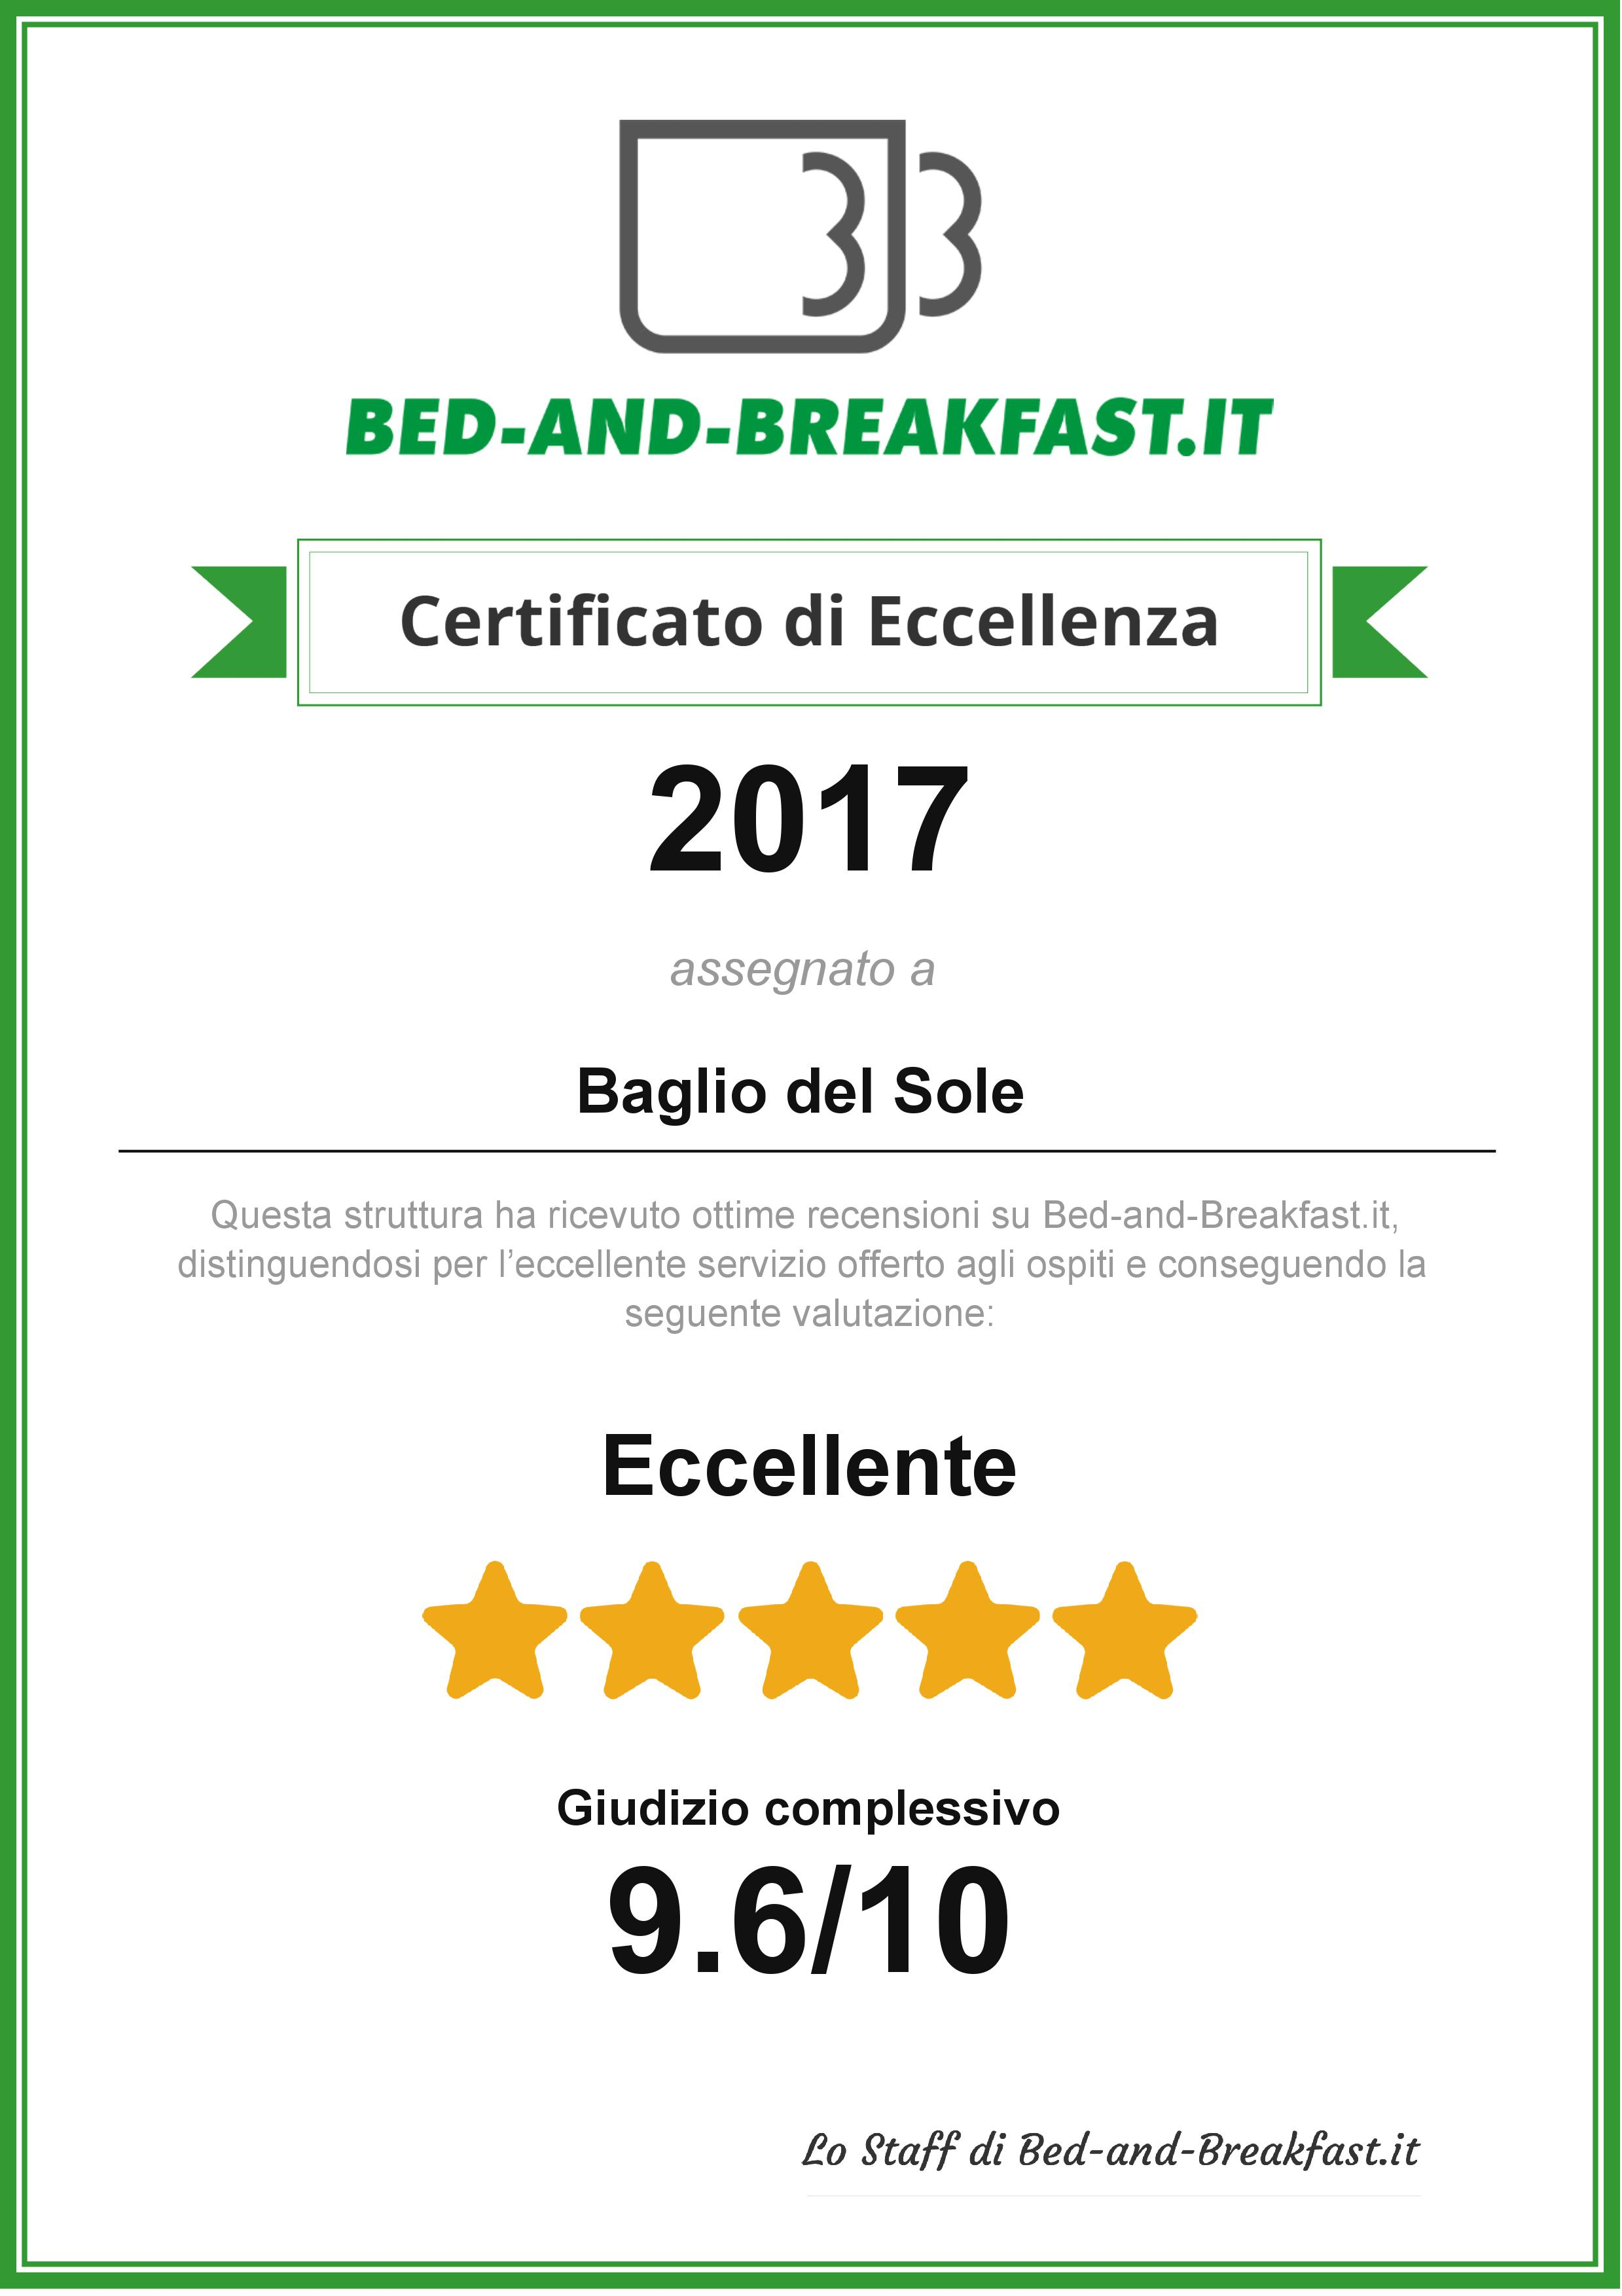 Bed-and-Breakfast.it - San Vito lo Capo - Baglio del Sole